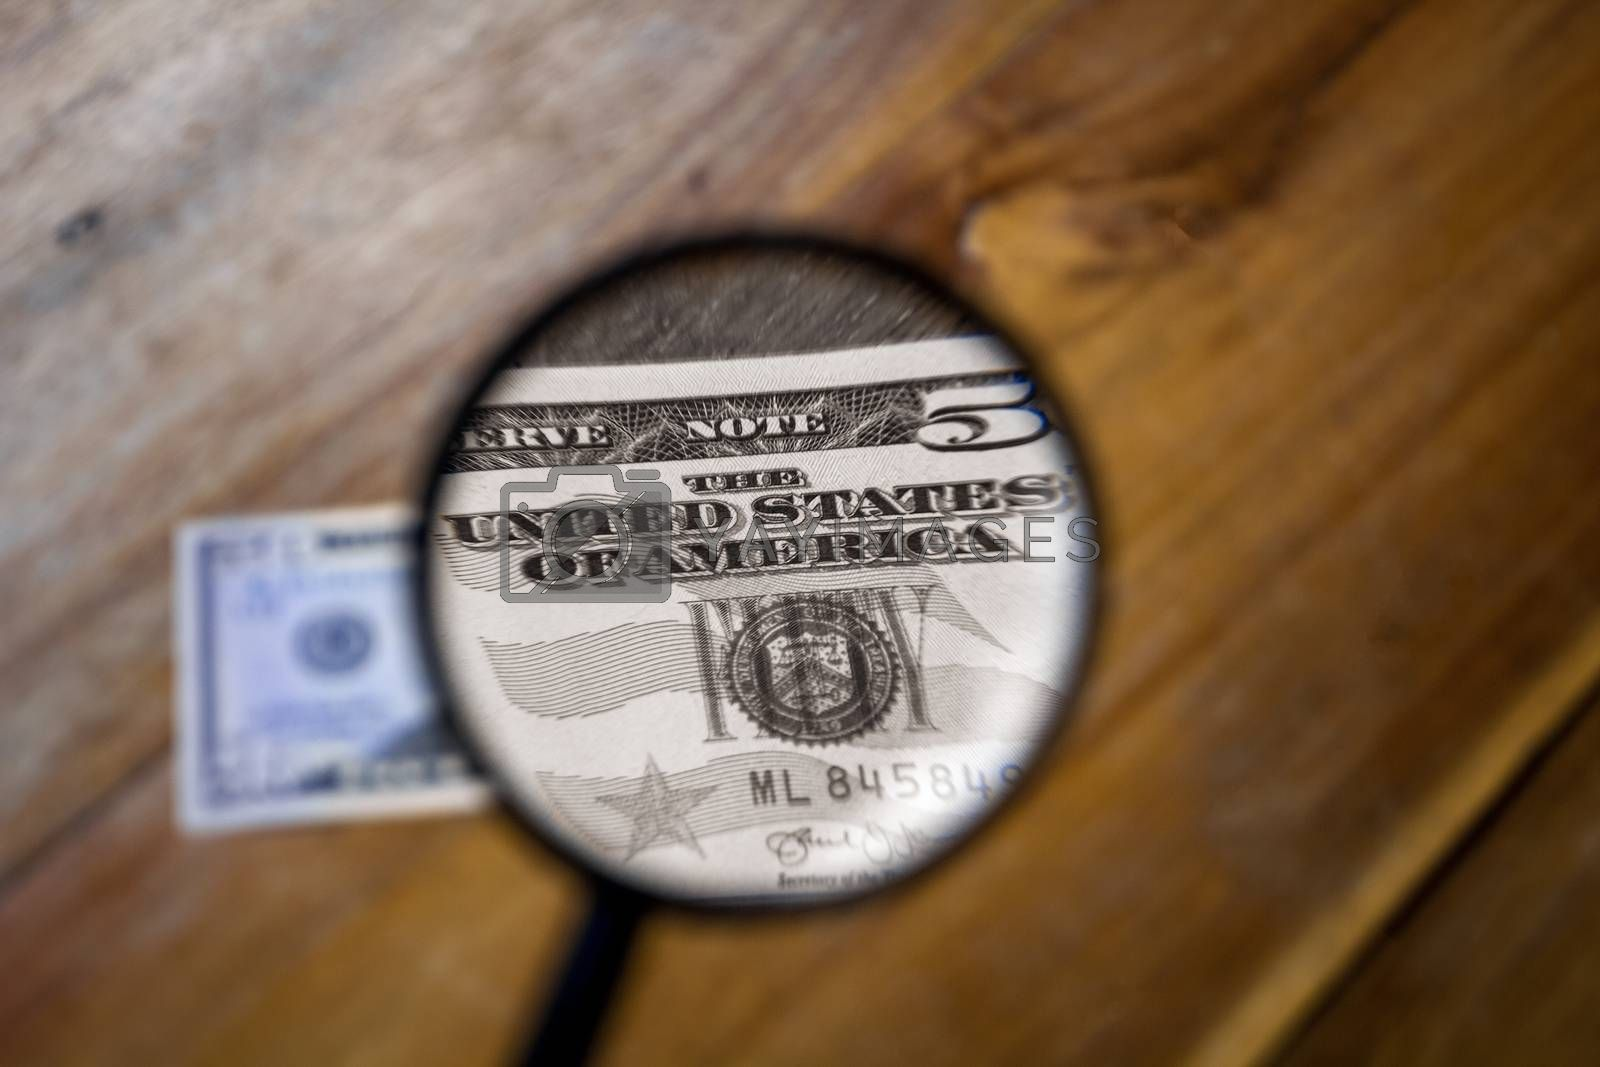 A colorless view through a magnifying glass of the letters, The United States of America, on a one dollar bill. The rest of the images are in color and out of focus.